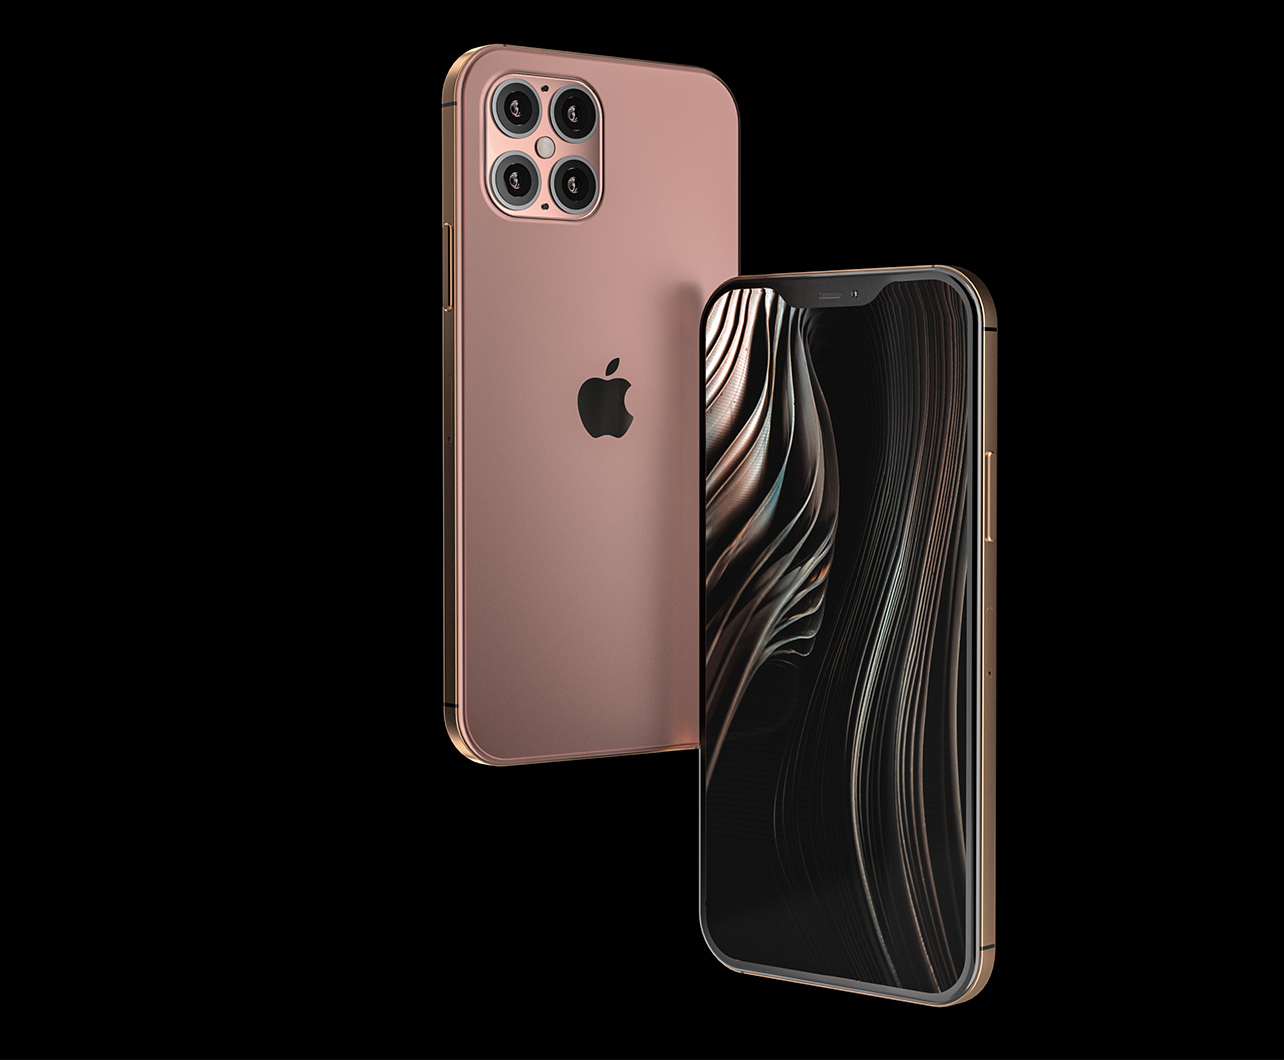 Купить онлайн Apple iPhone 11 в Comfy